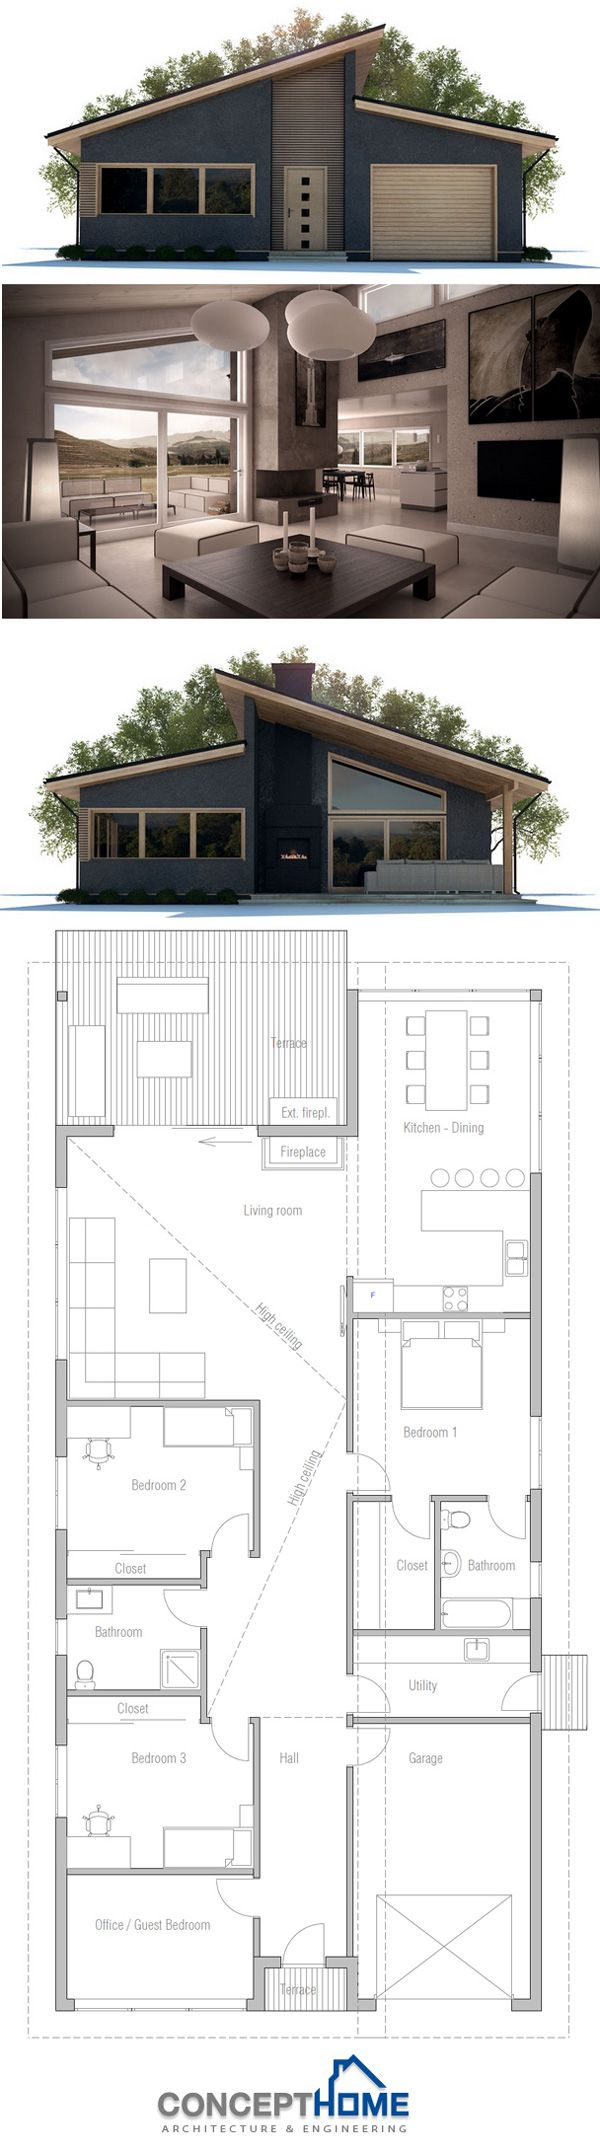 im in love with this house i think its the box type look that small modern housesmodern house plansbig - Small Modern House Plans